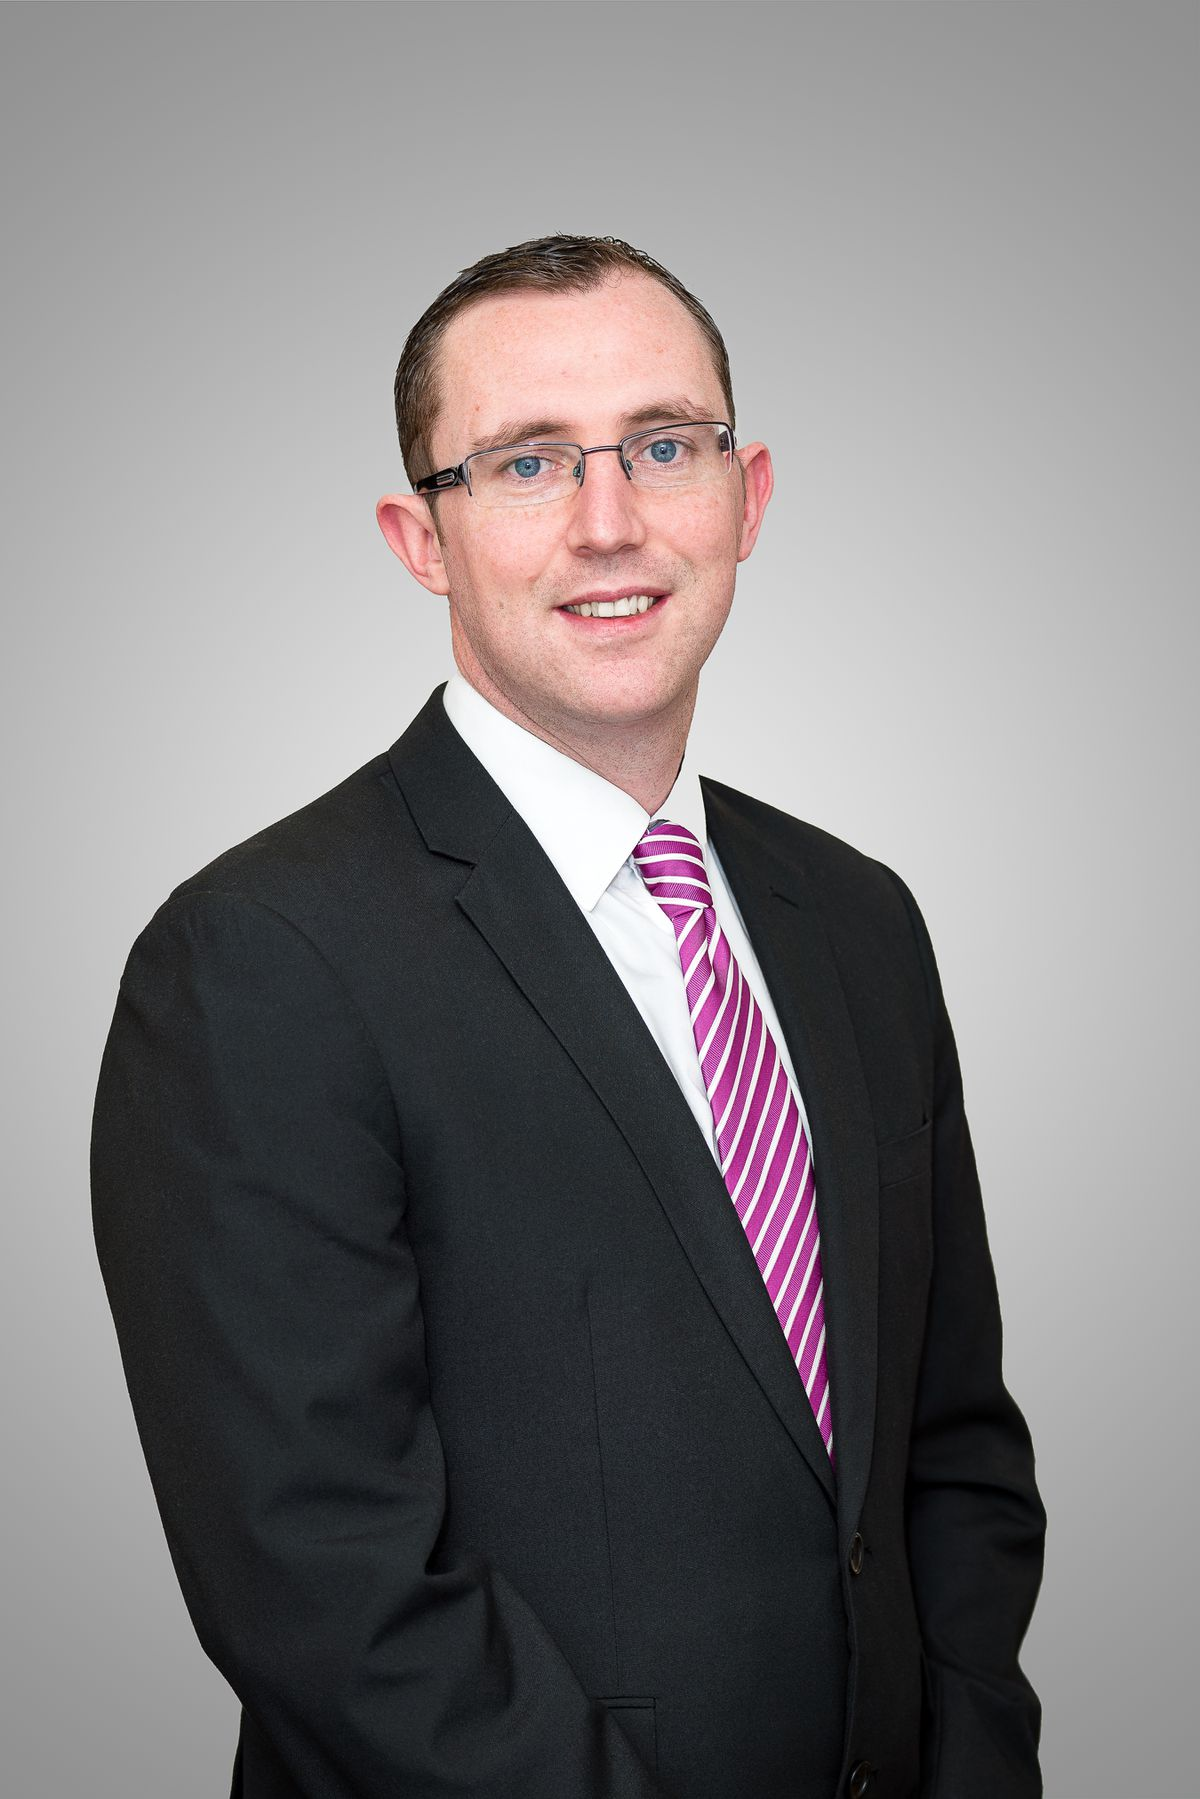 Sean Gillease, managing director of Sovereign Pension Services. (Picture by www.johnrossphotography.co.uk)